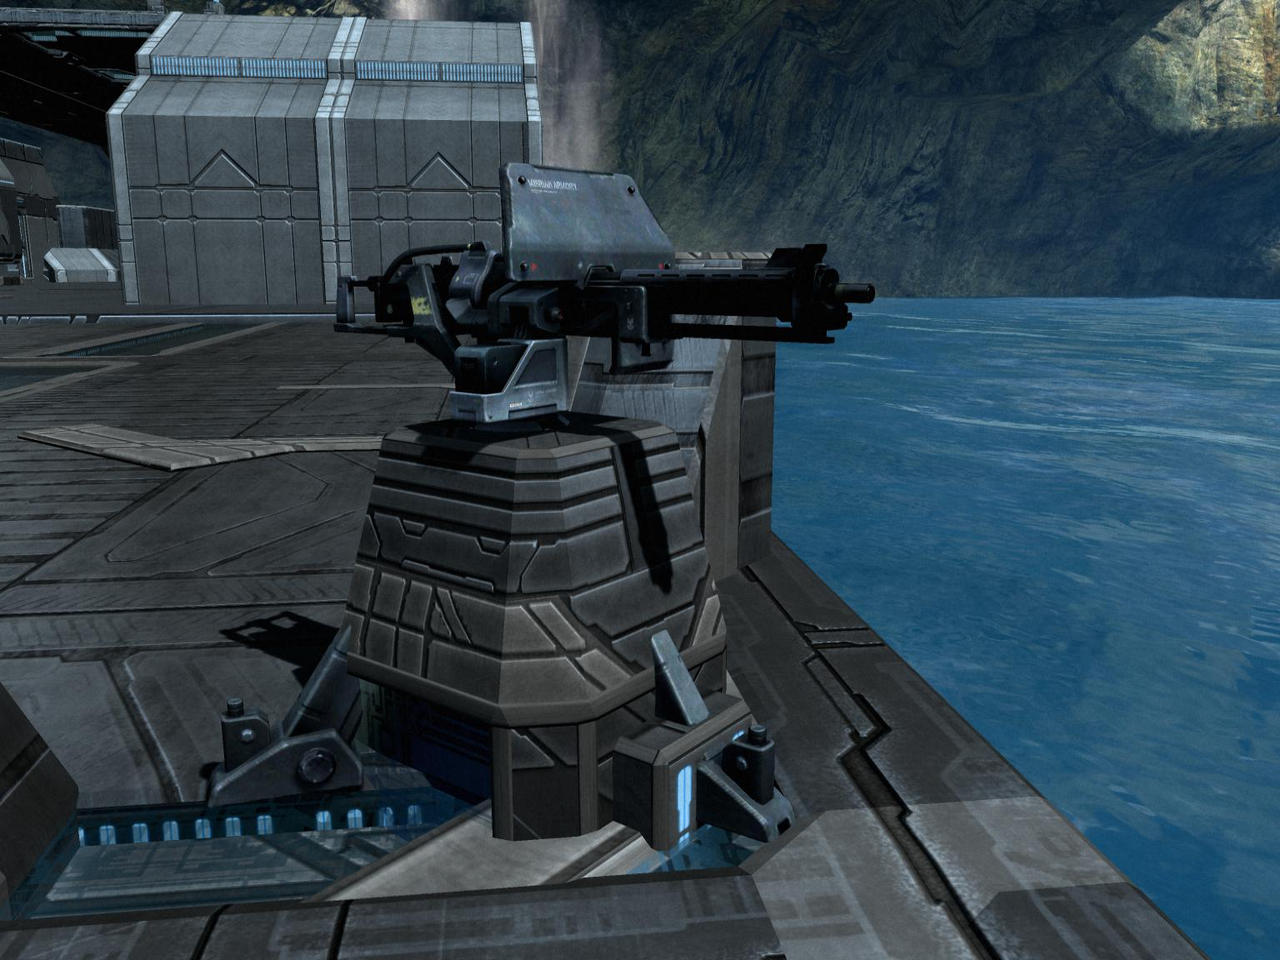 halo machine gun